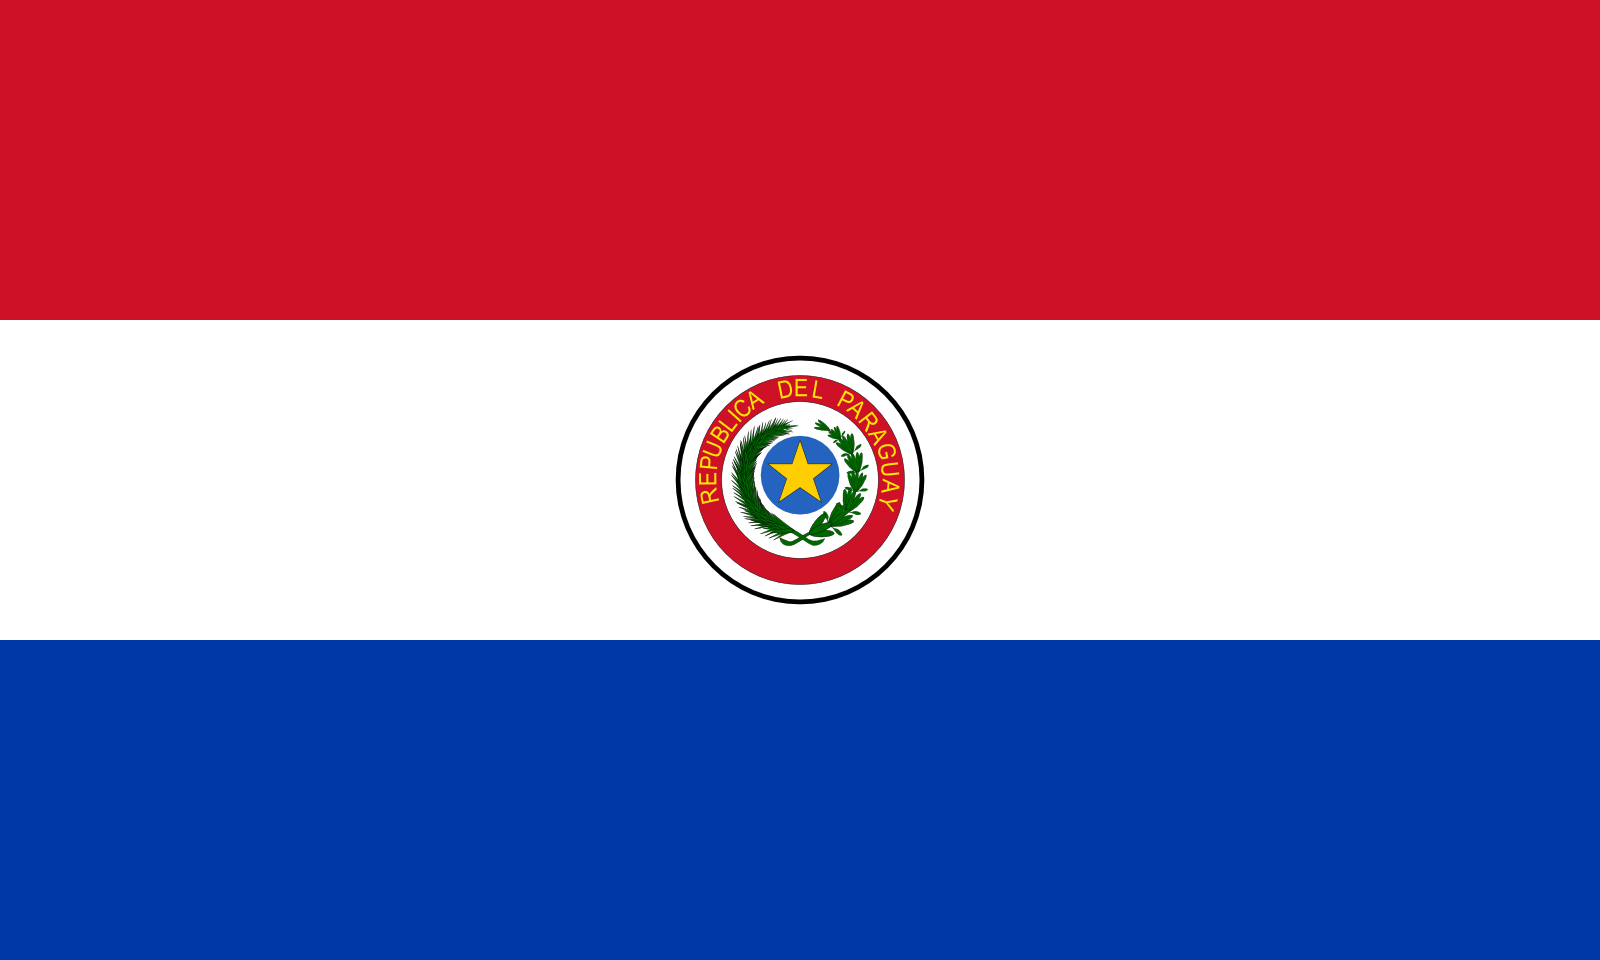 Paraguay flag symbol meaning choice image symbol and sign ideas national flag of paraguay details and meaning the flag of paraguay spanish bandera de paraguay was buycottarizona